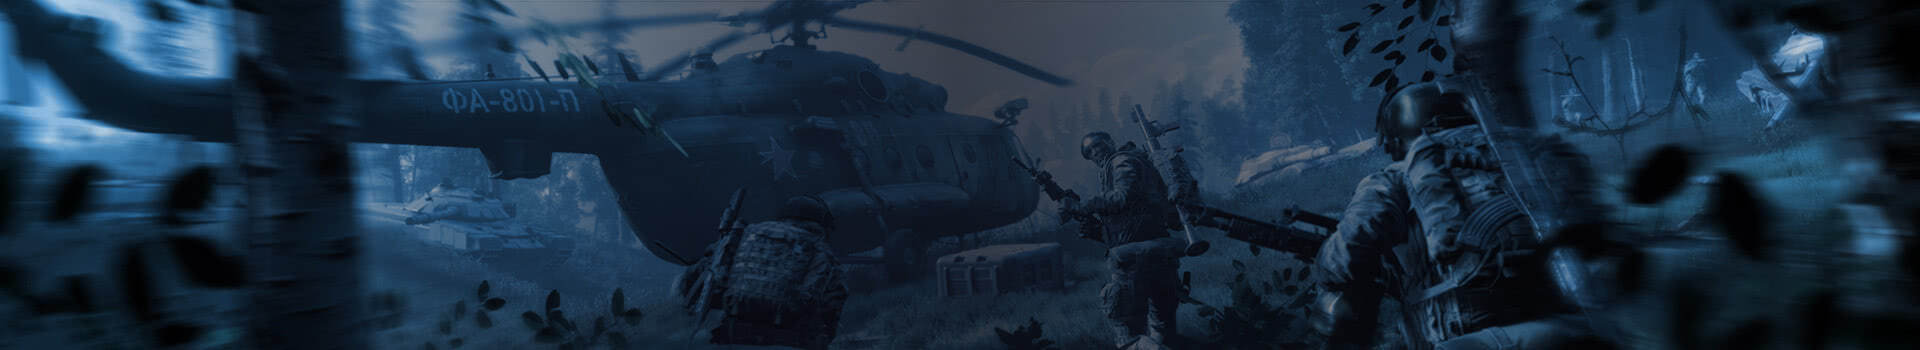 Fall3nWarrior Gaming Home Page Header Background featuring a group of soldiers running towards an awaiting helicopter for extraction.